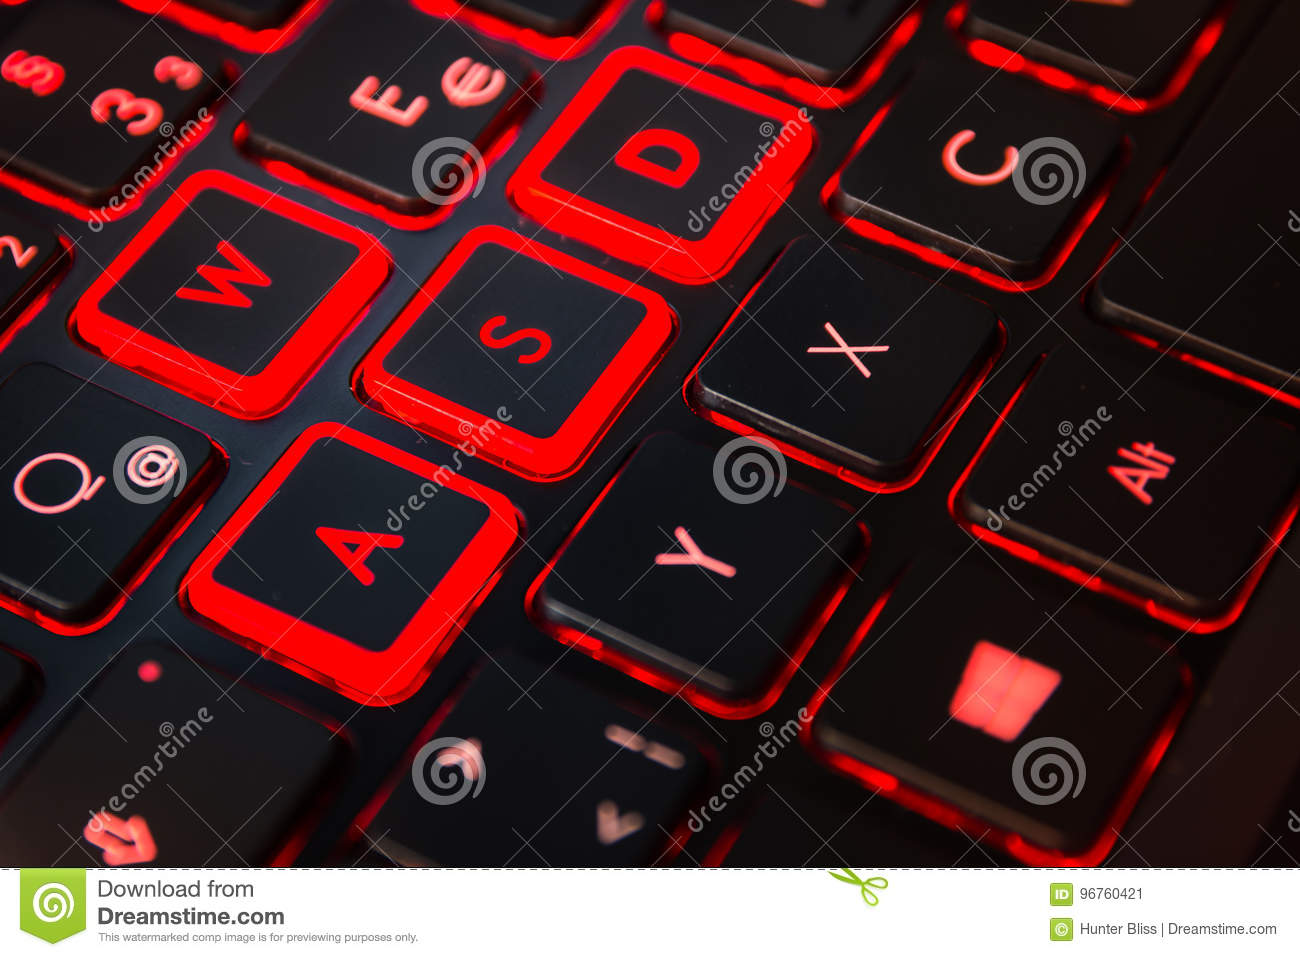 Red Backlit Computer Gaming Keyboard Action Gamer Equipment